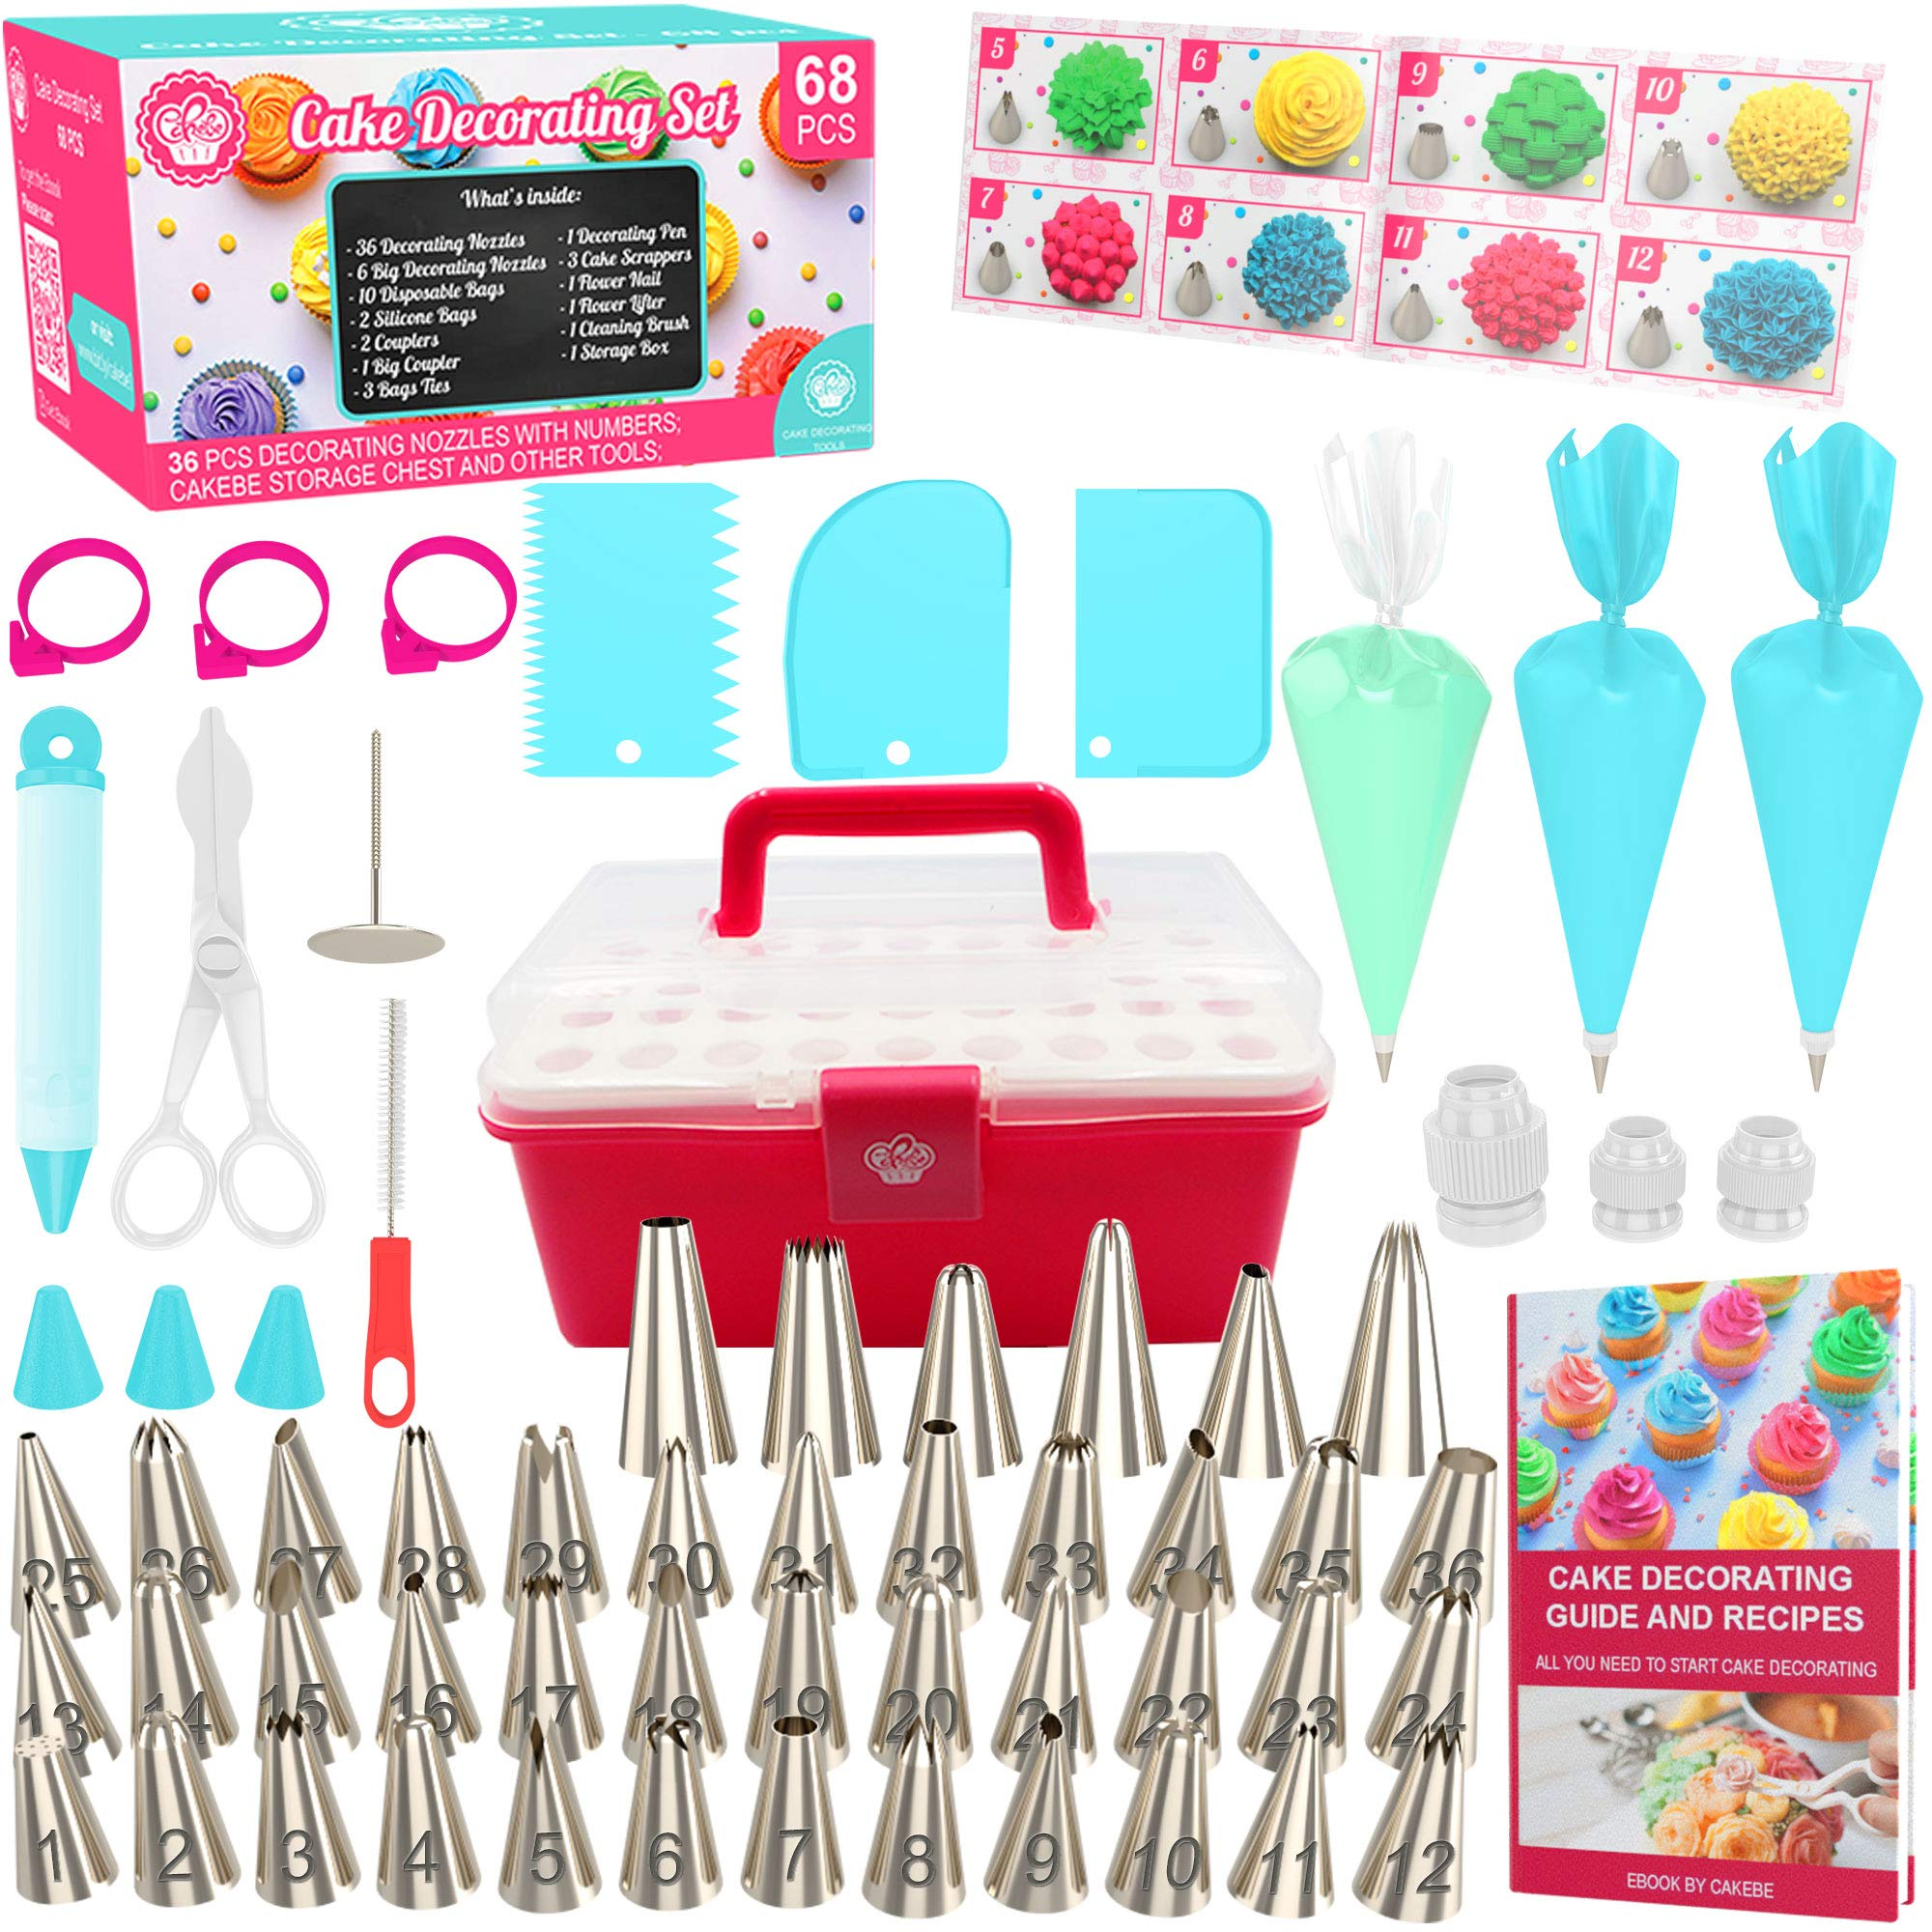 Cake Decorating Kit Cupcake Decorating Kit - 68pcs Cookie Decorating Supplies and Cookie Decorating Kit with Piping Bags and Tips - Frosting Icing Tips Pastry Bags with Tips - Baking Decorating Kit by Cakebe